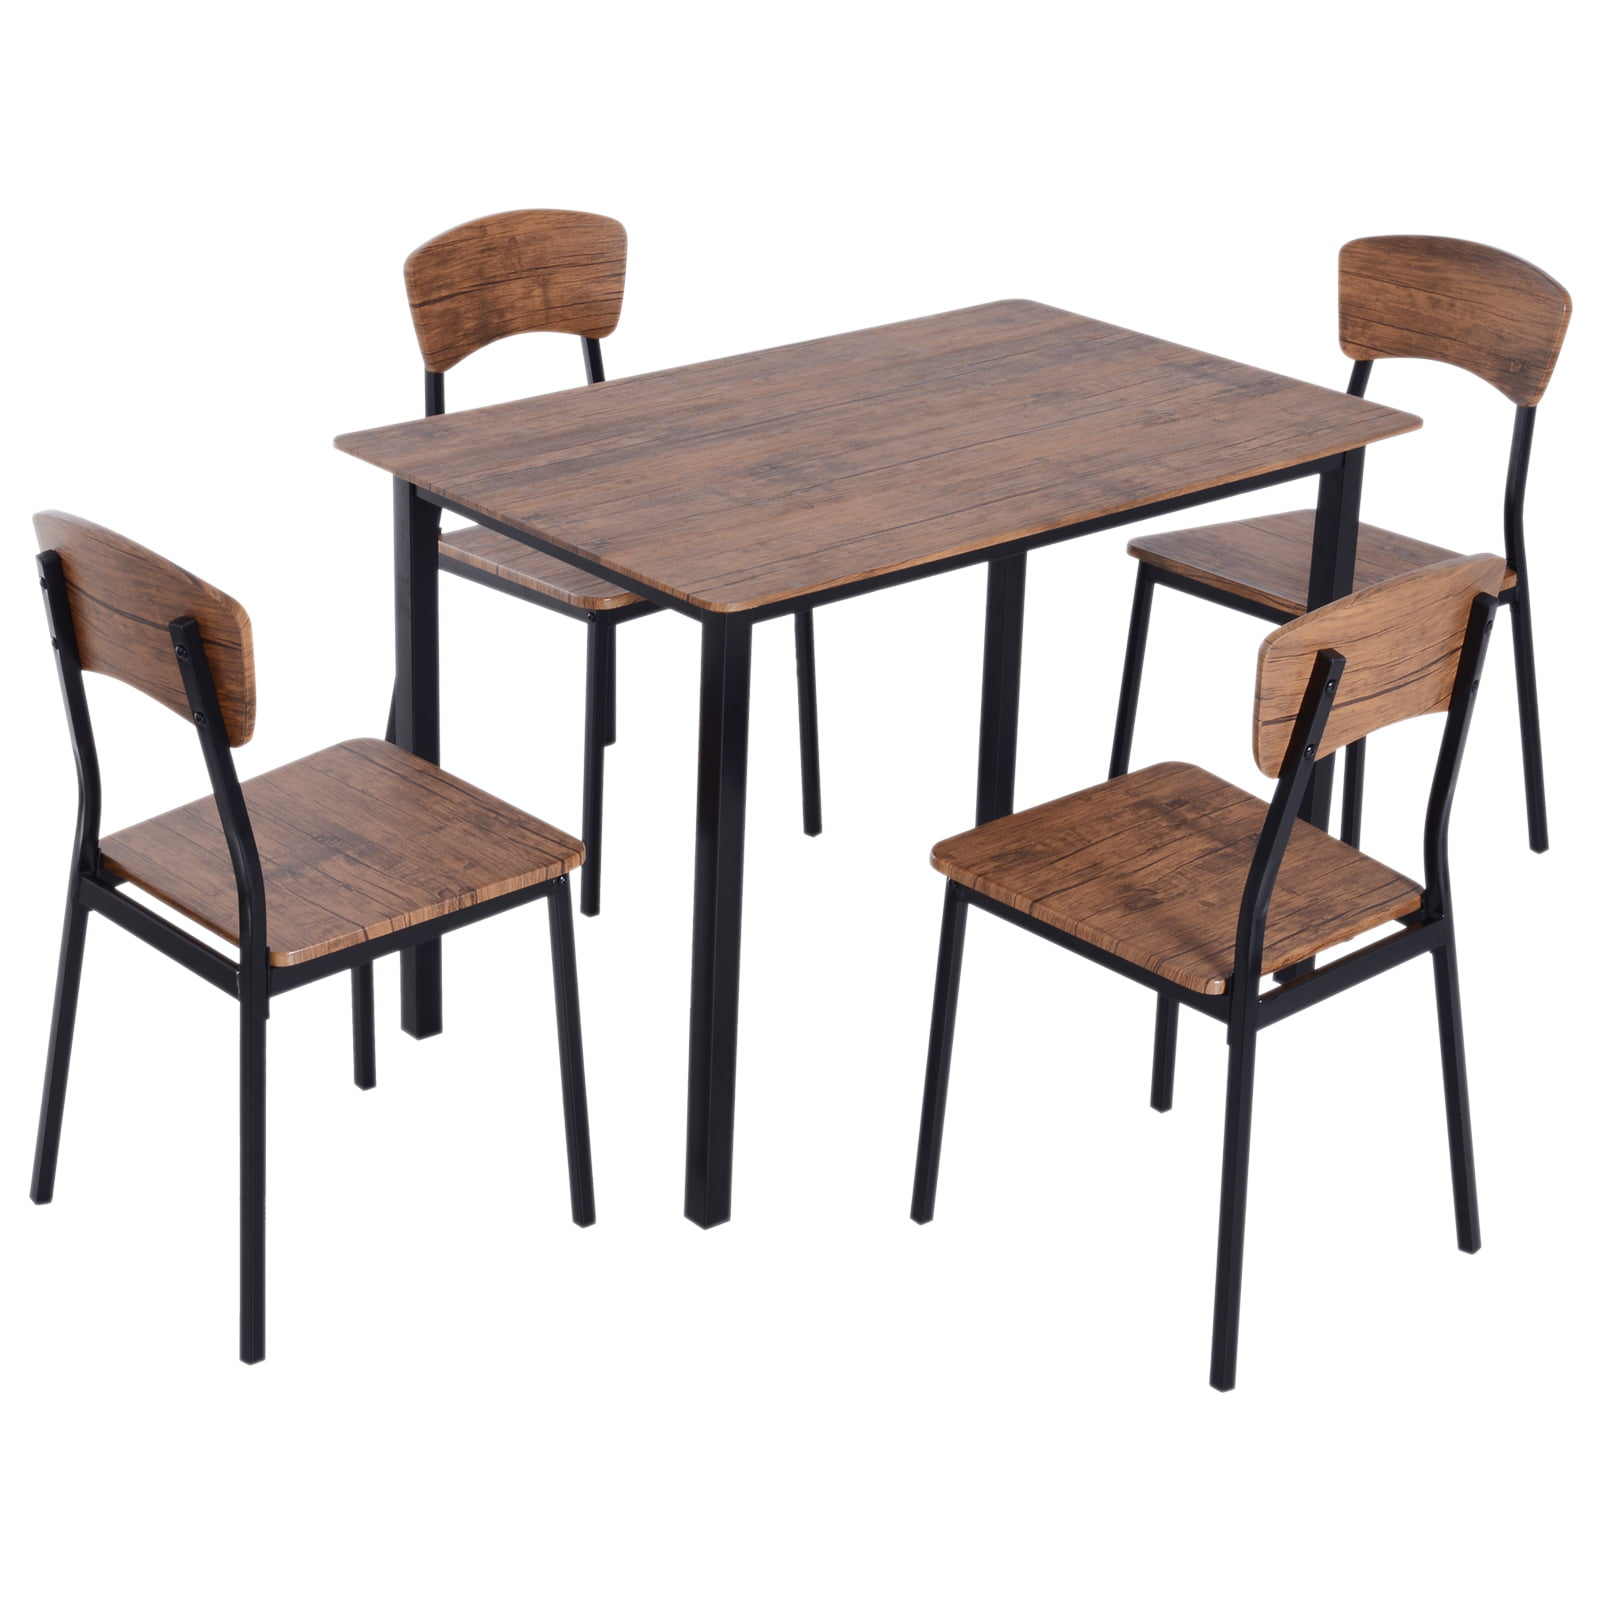 Homcom 5 Piece Modern Counter Height, Counter Height Kitchen Table And Chairs Set